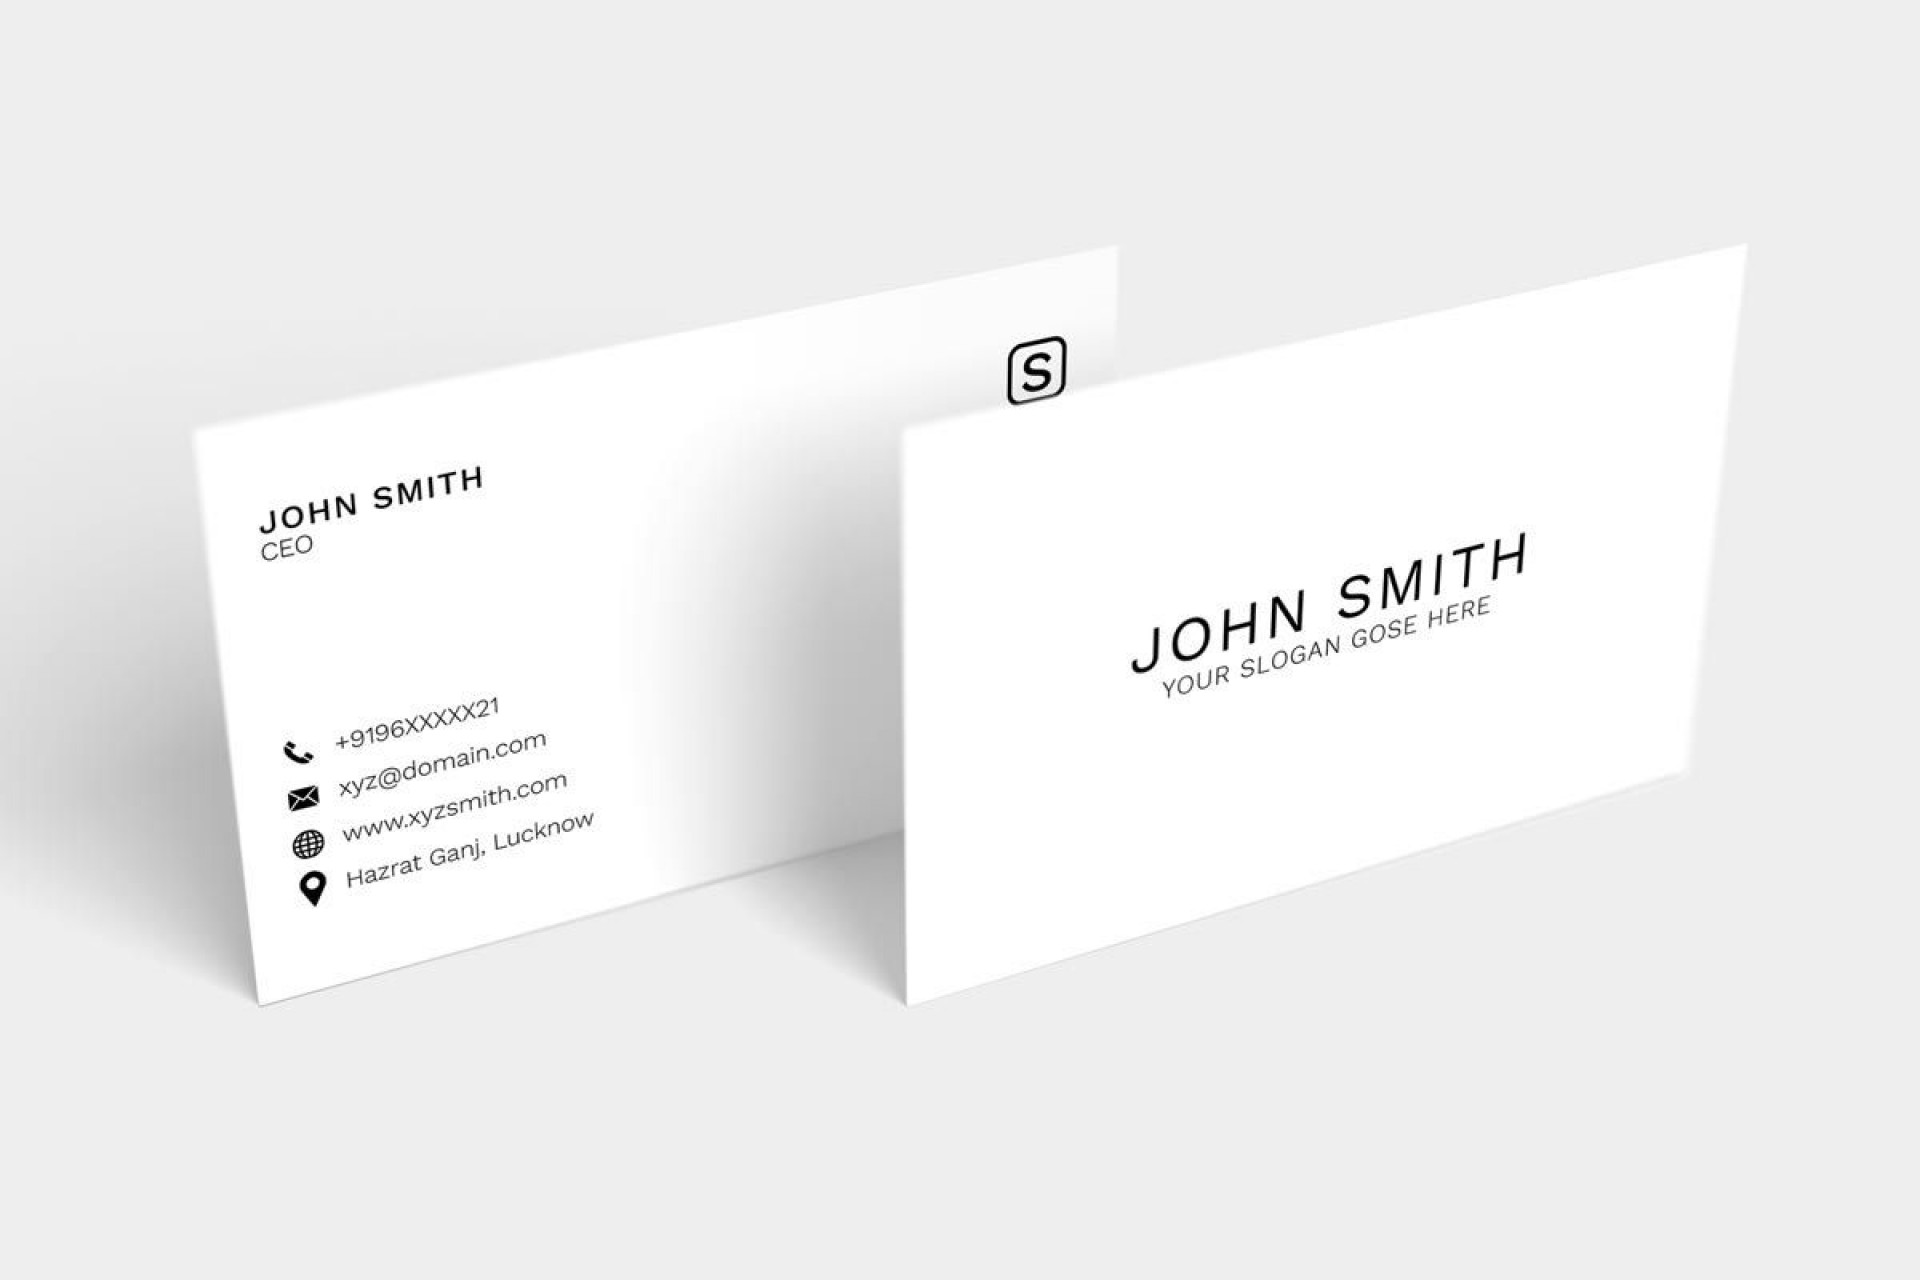 011 Staggering Minimal Busines Card Template Free High Resolution  Easy Simple Download1920